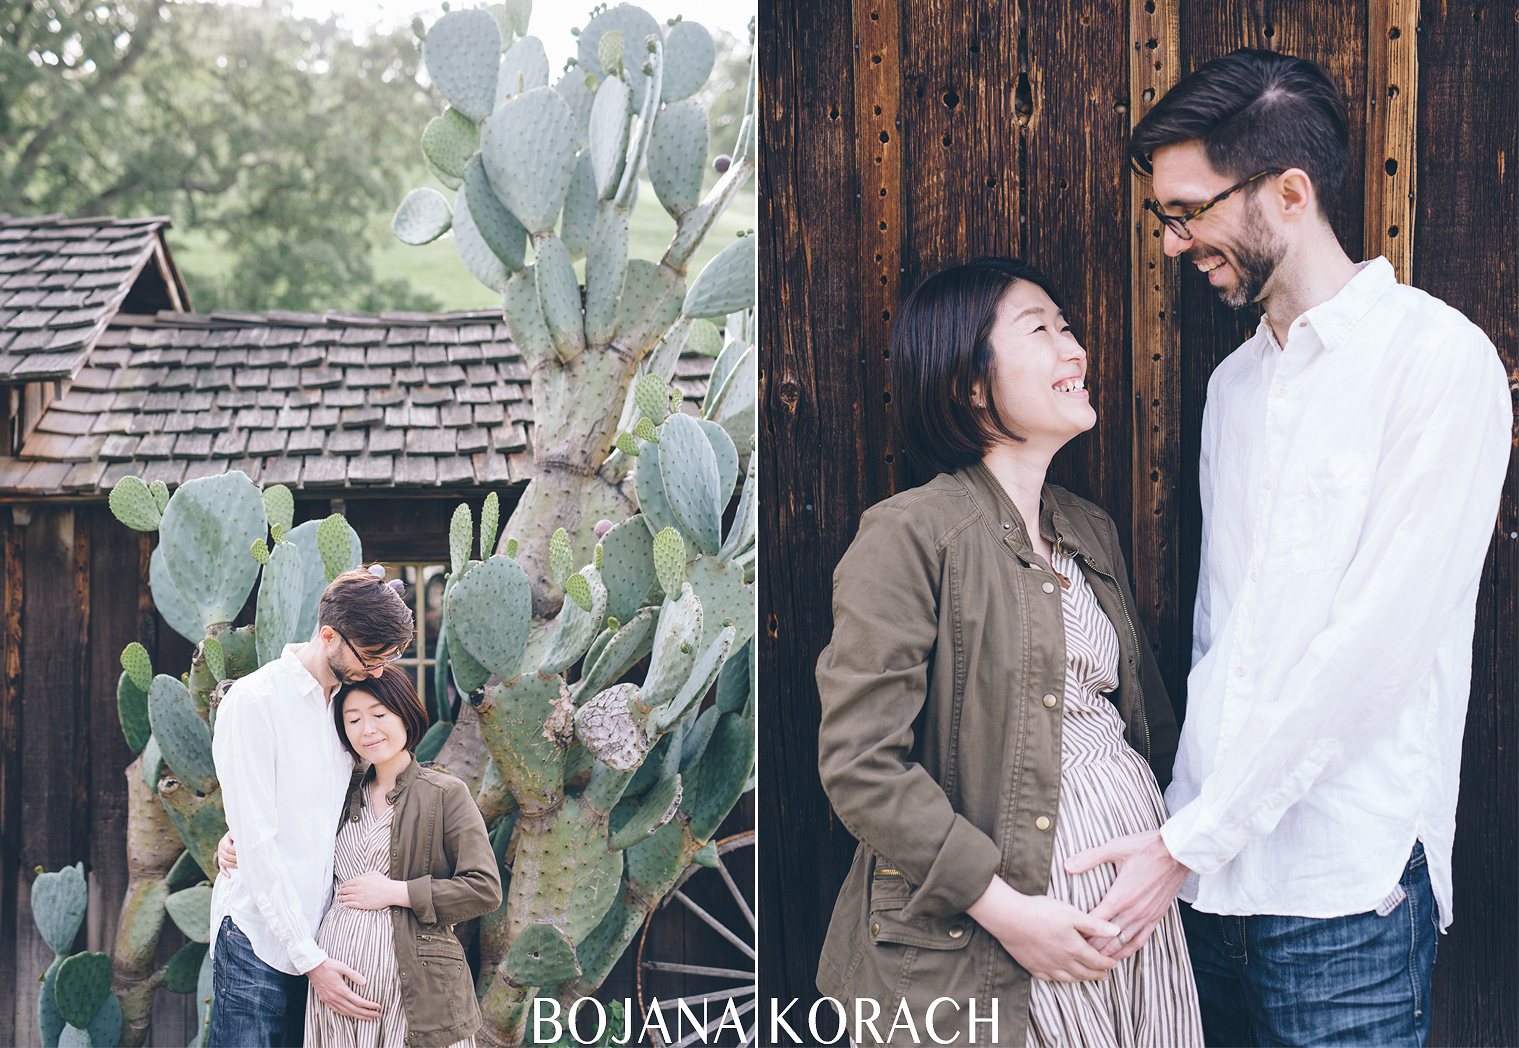 marnity session with a couple standing near a barn and cactus